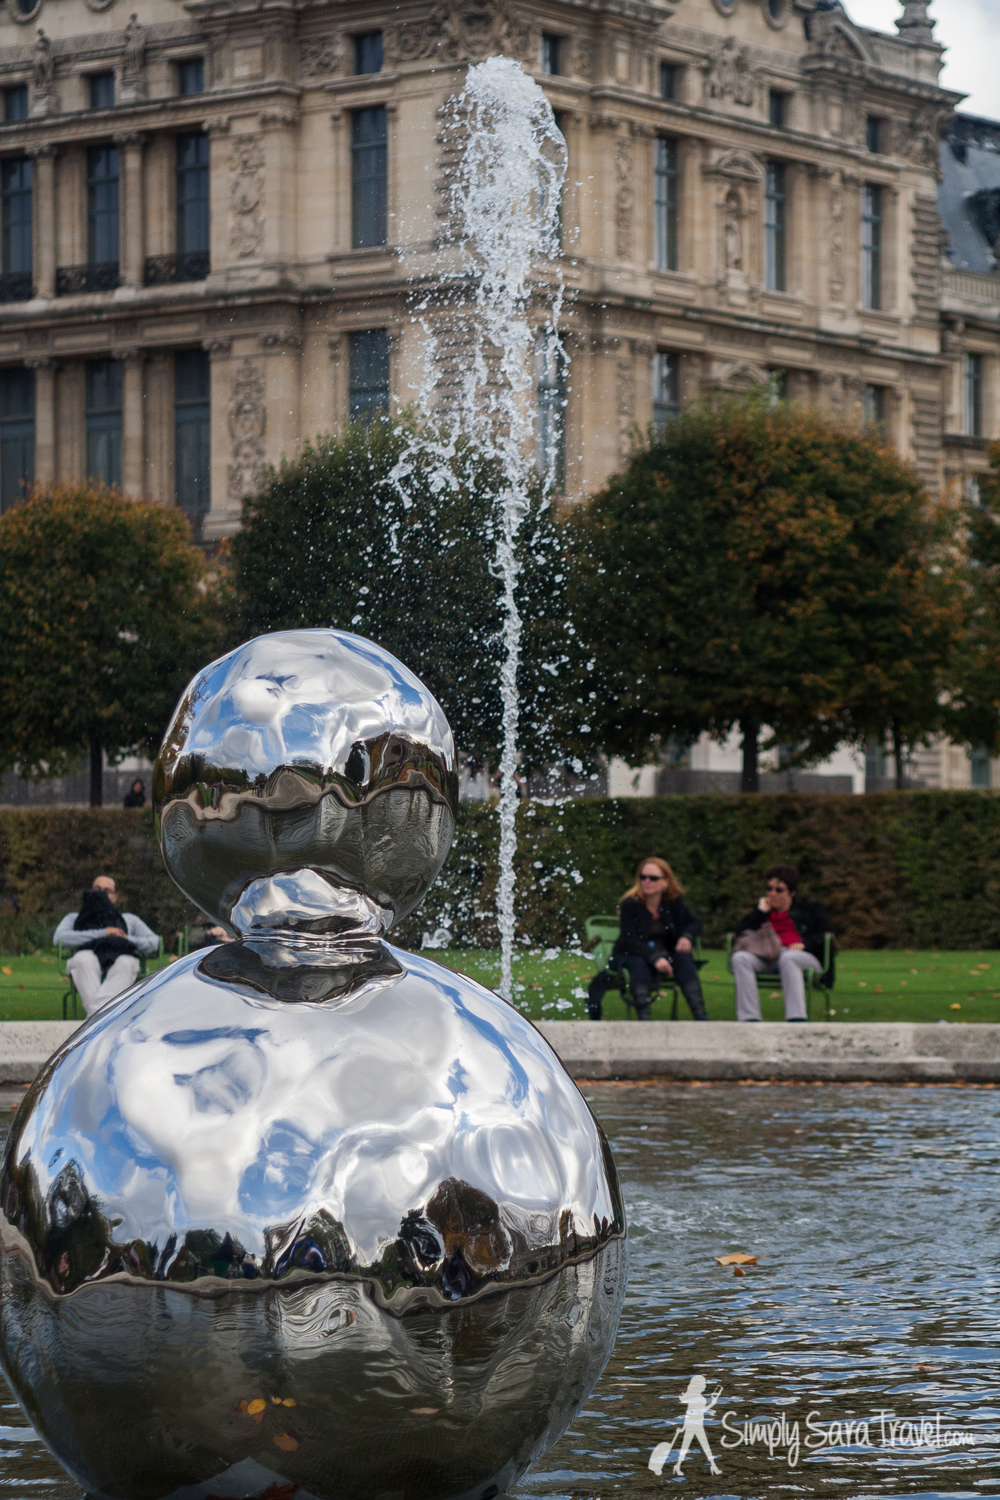 FIAC 2013 in Jardin des Tuileries, silver sculpture